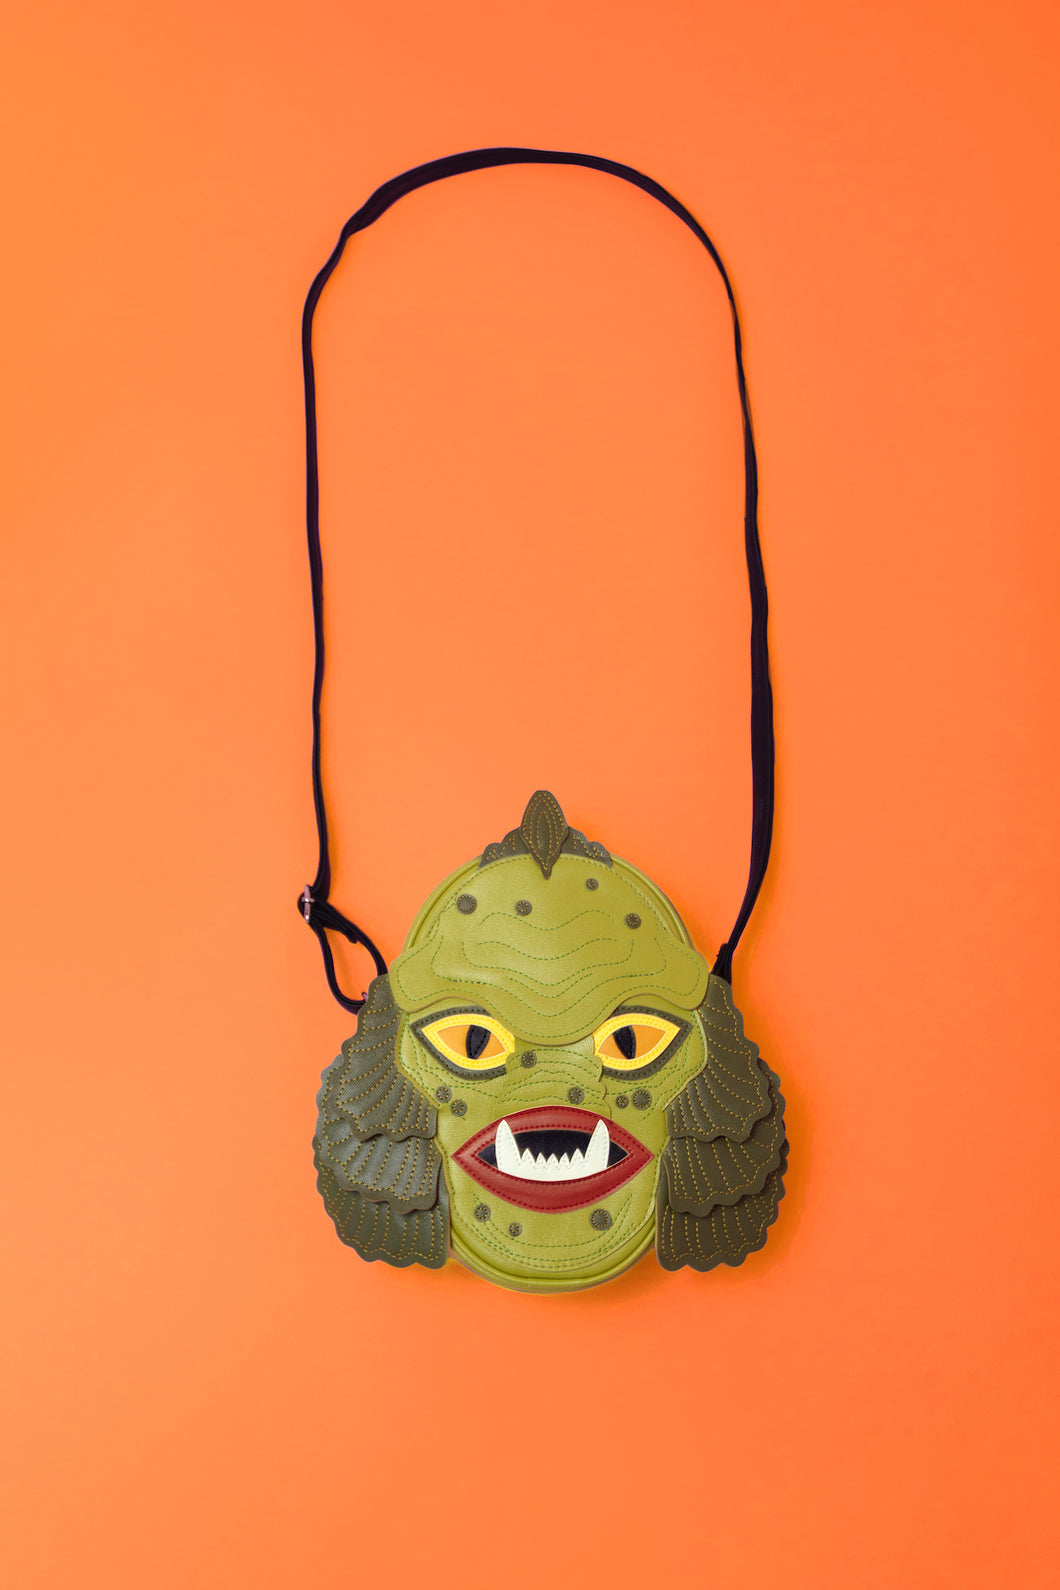 Vixen x Love Pain and Stitches Swamp Monster Bag